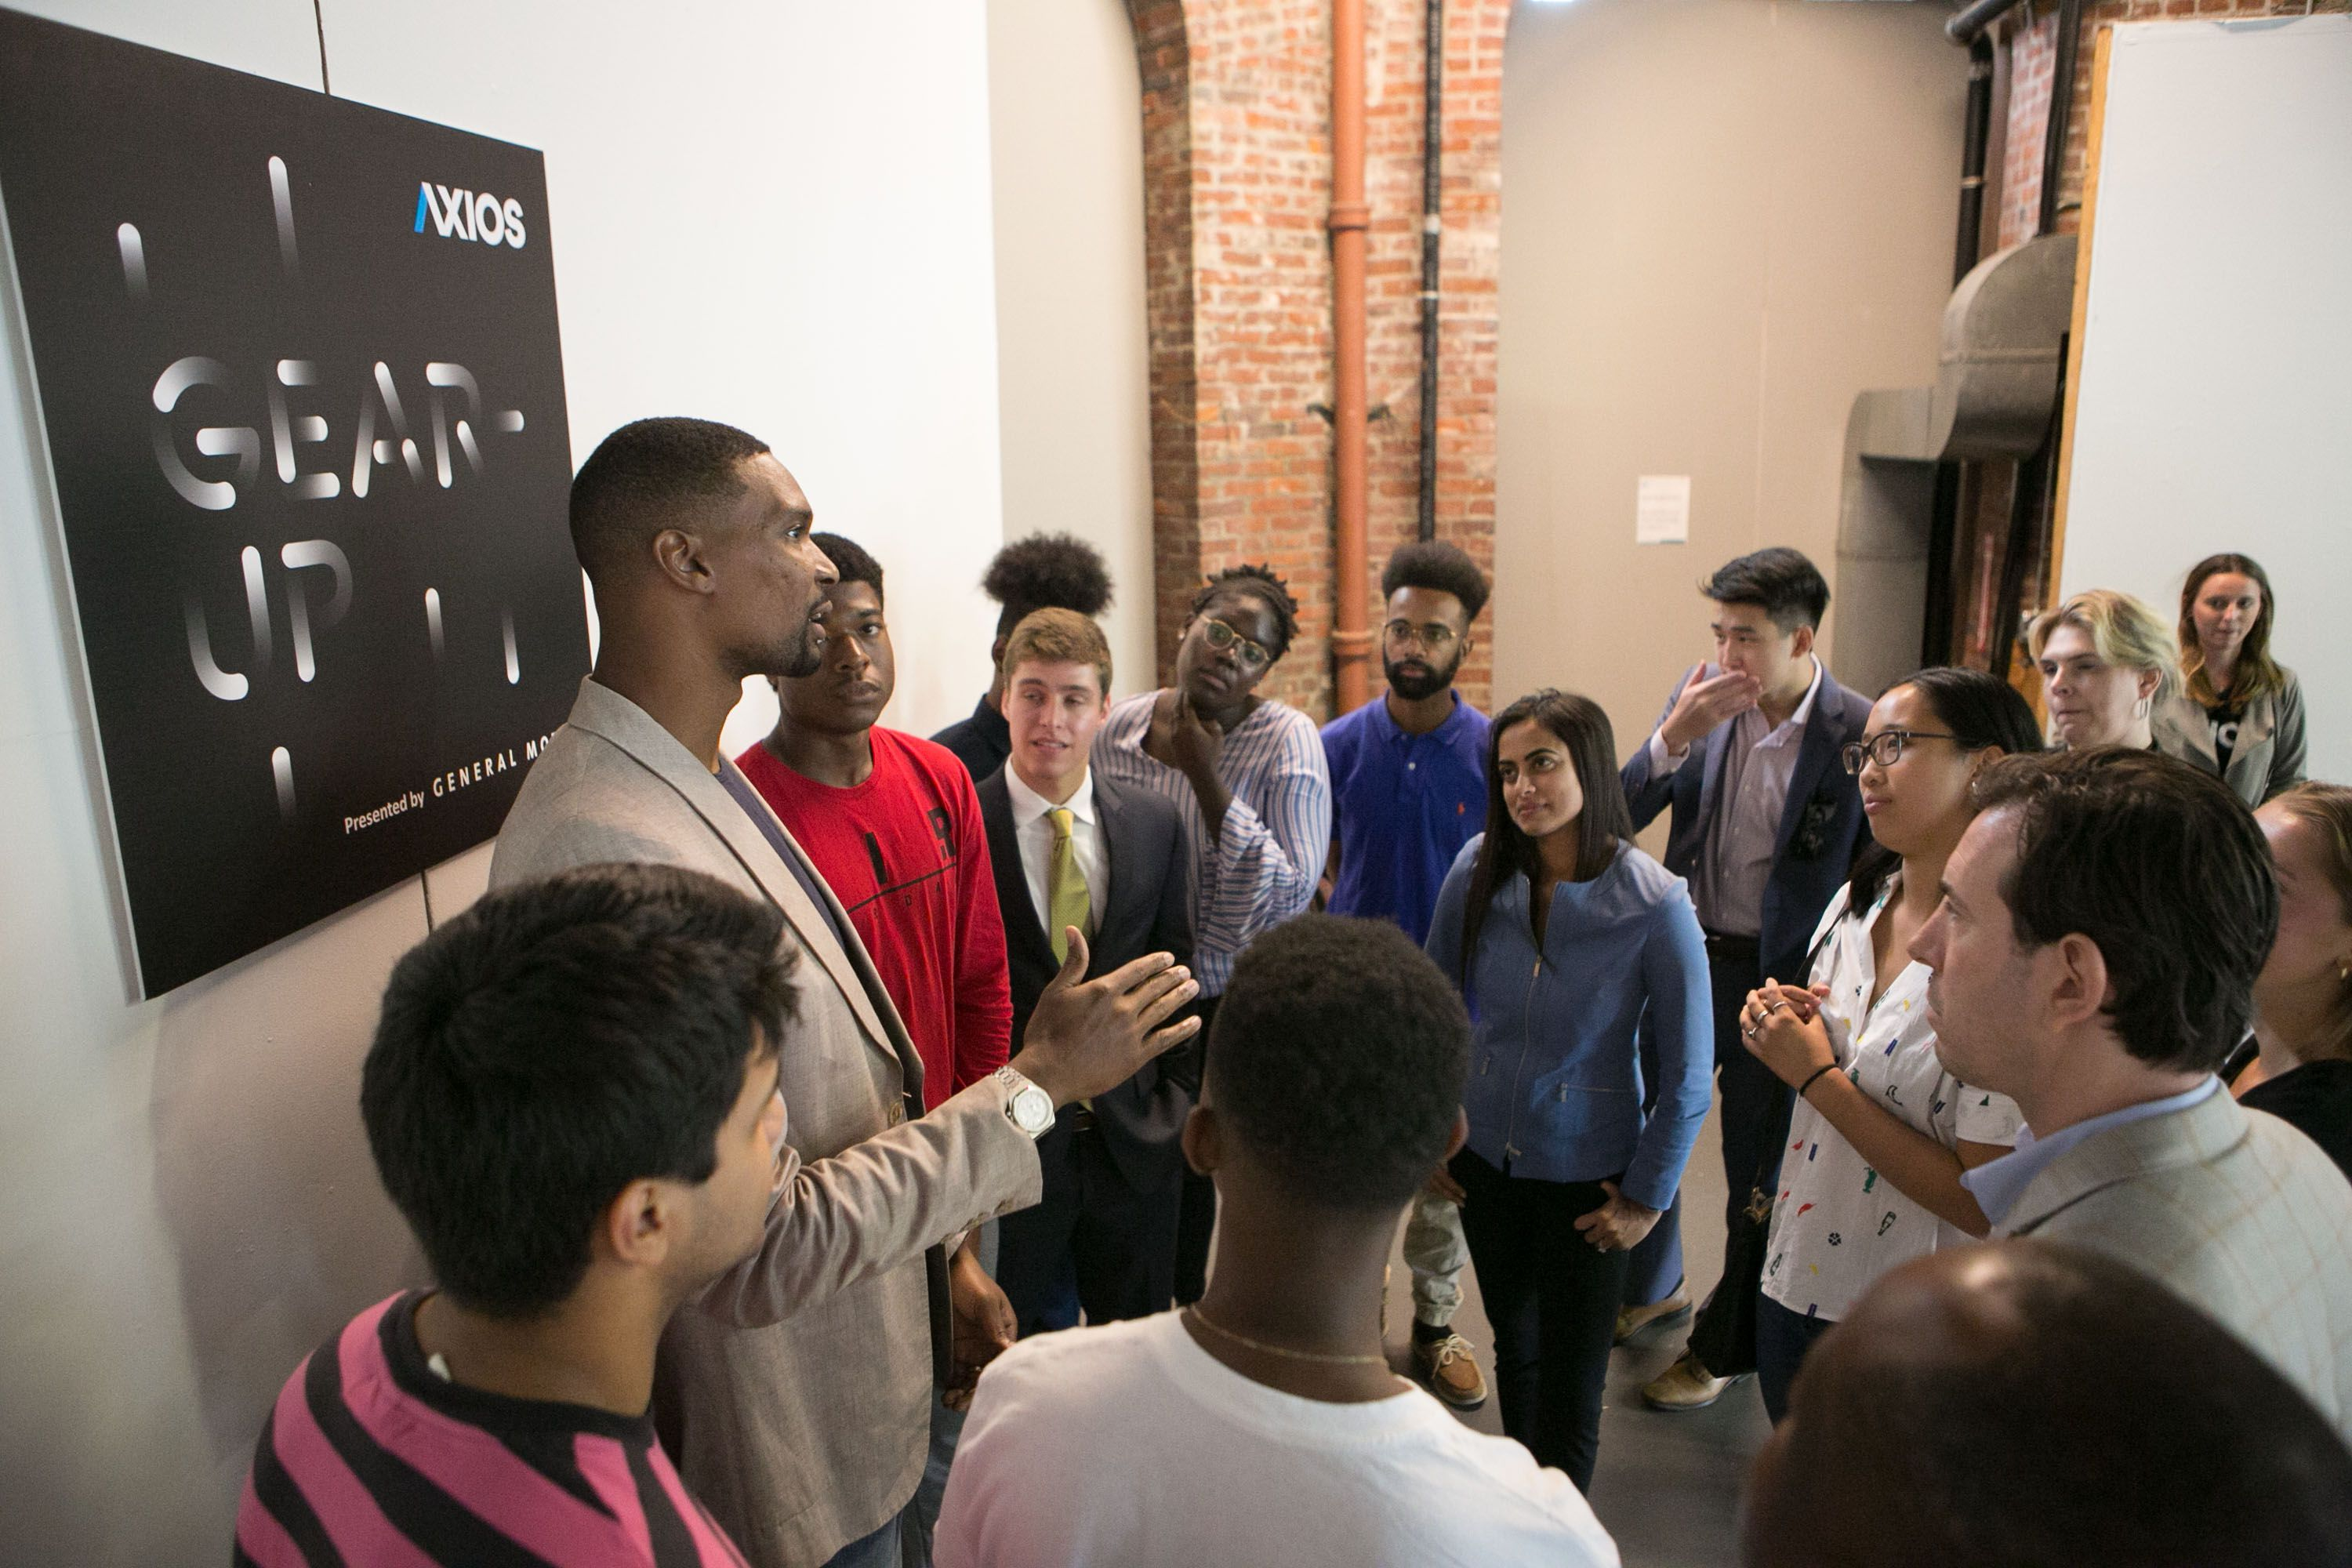 Chris Bosh talking to college students during a post-event meet and greet.